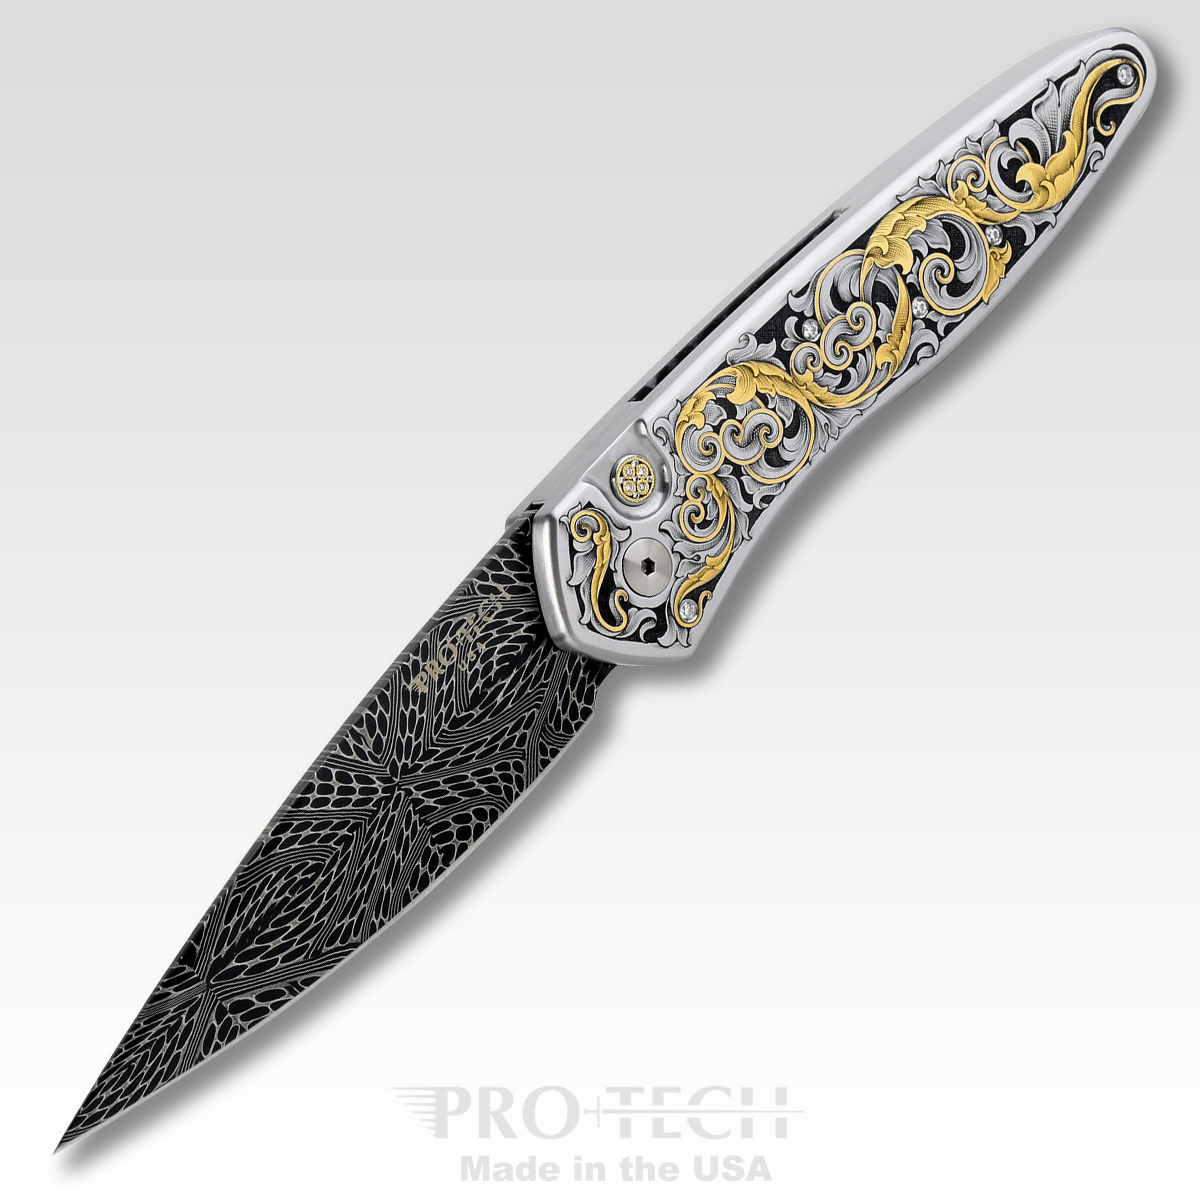 Knife Media News Media Protech Knives